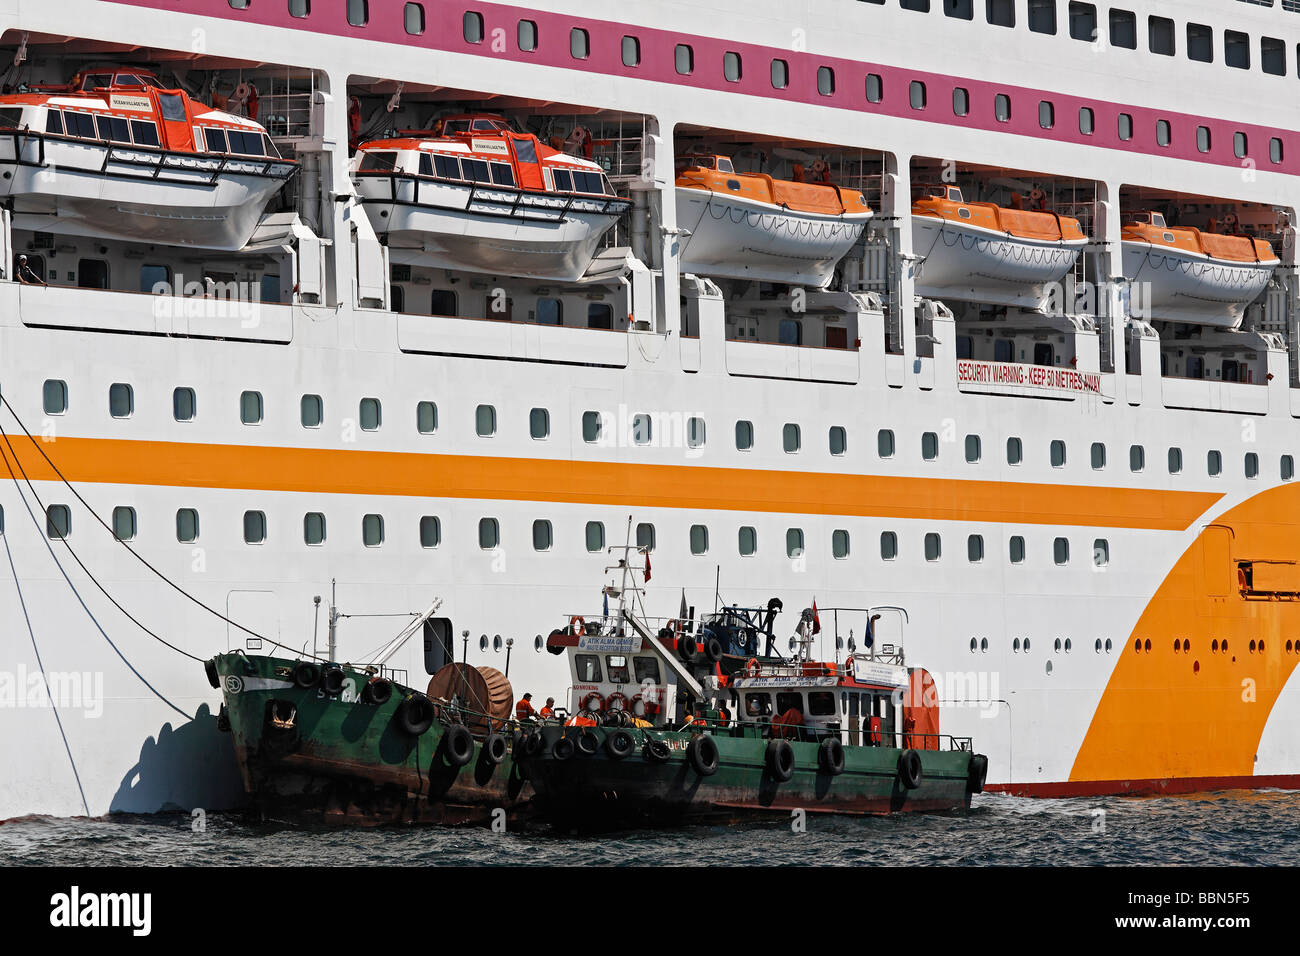 Ship's side of the cruise ship Celebrity Solisitce, lifeboats in the lower decks, boats takes waste off board, - Stock Image